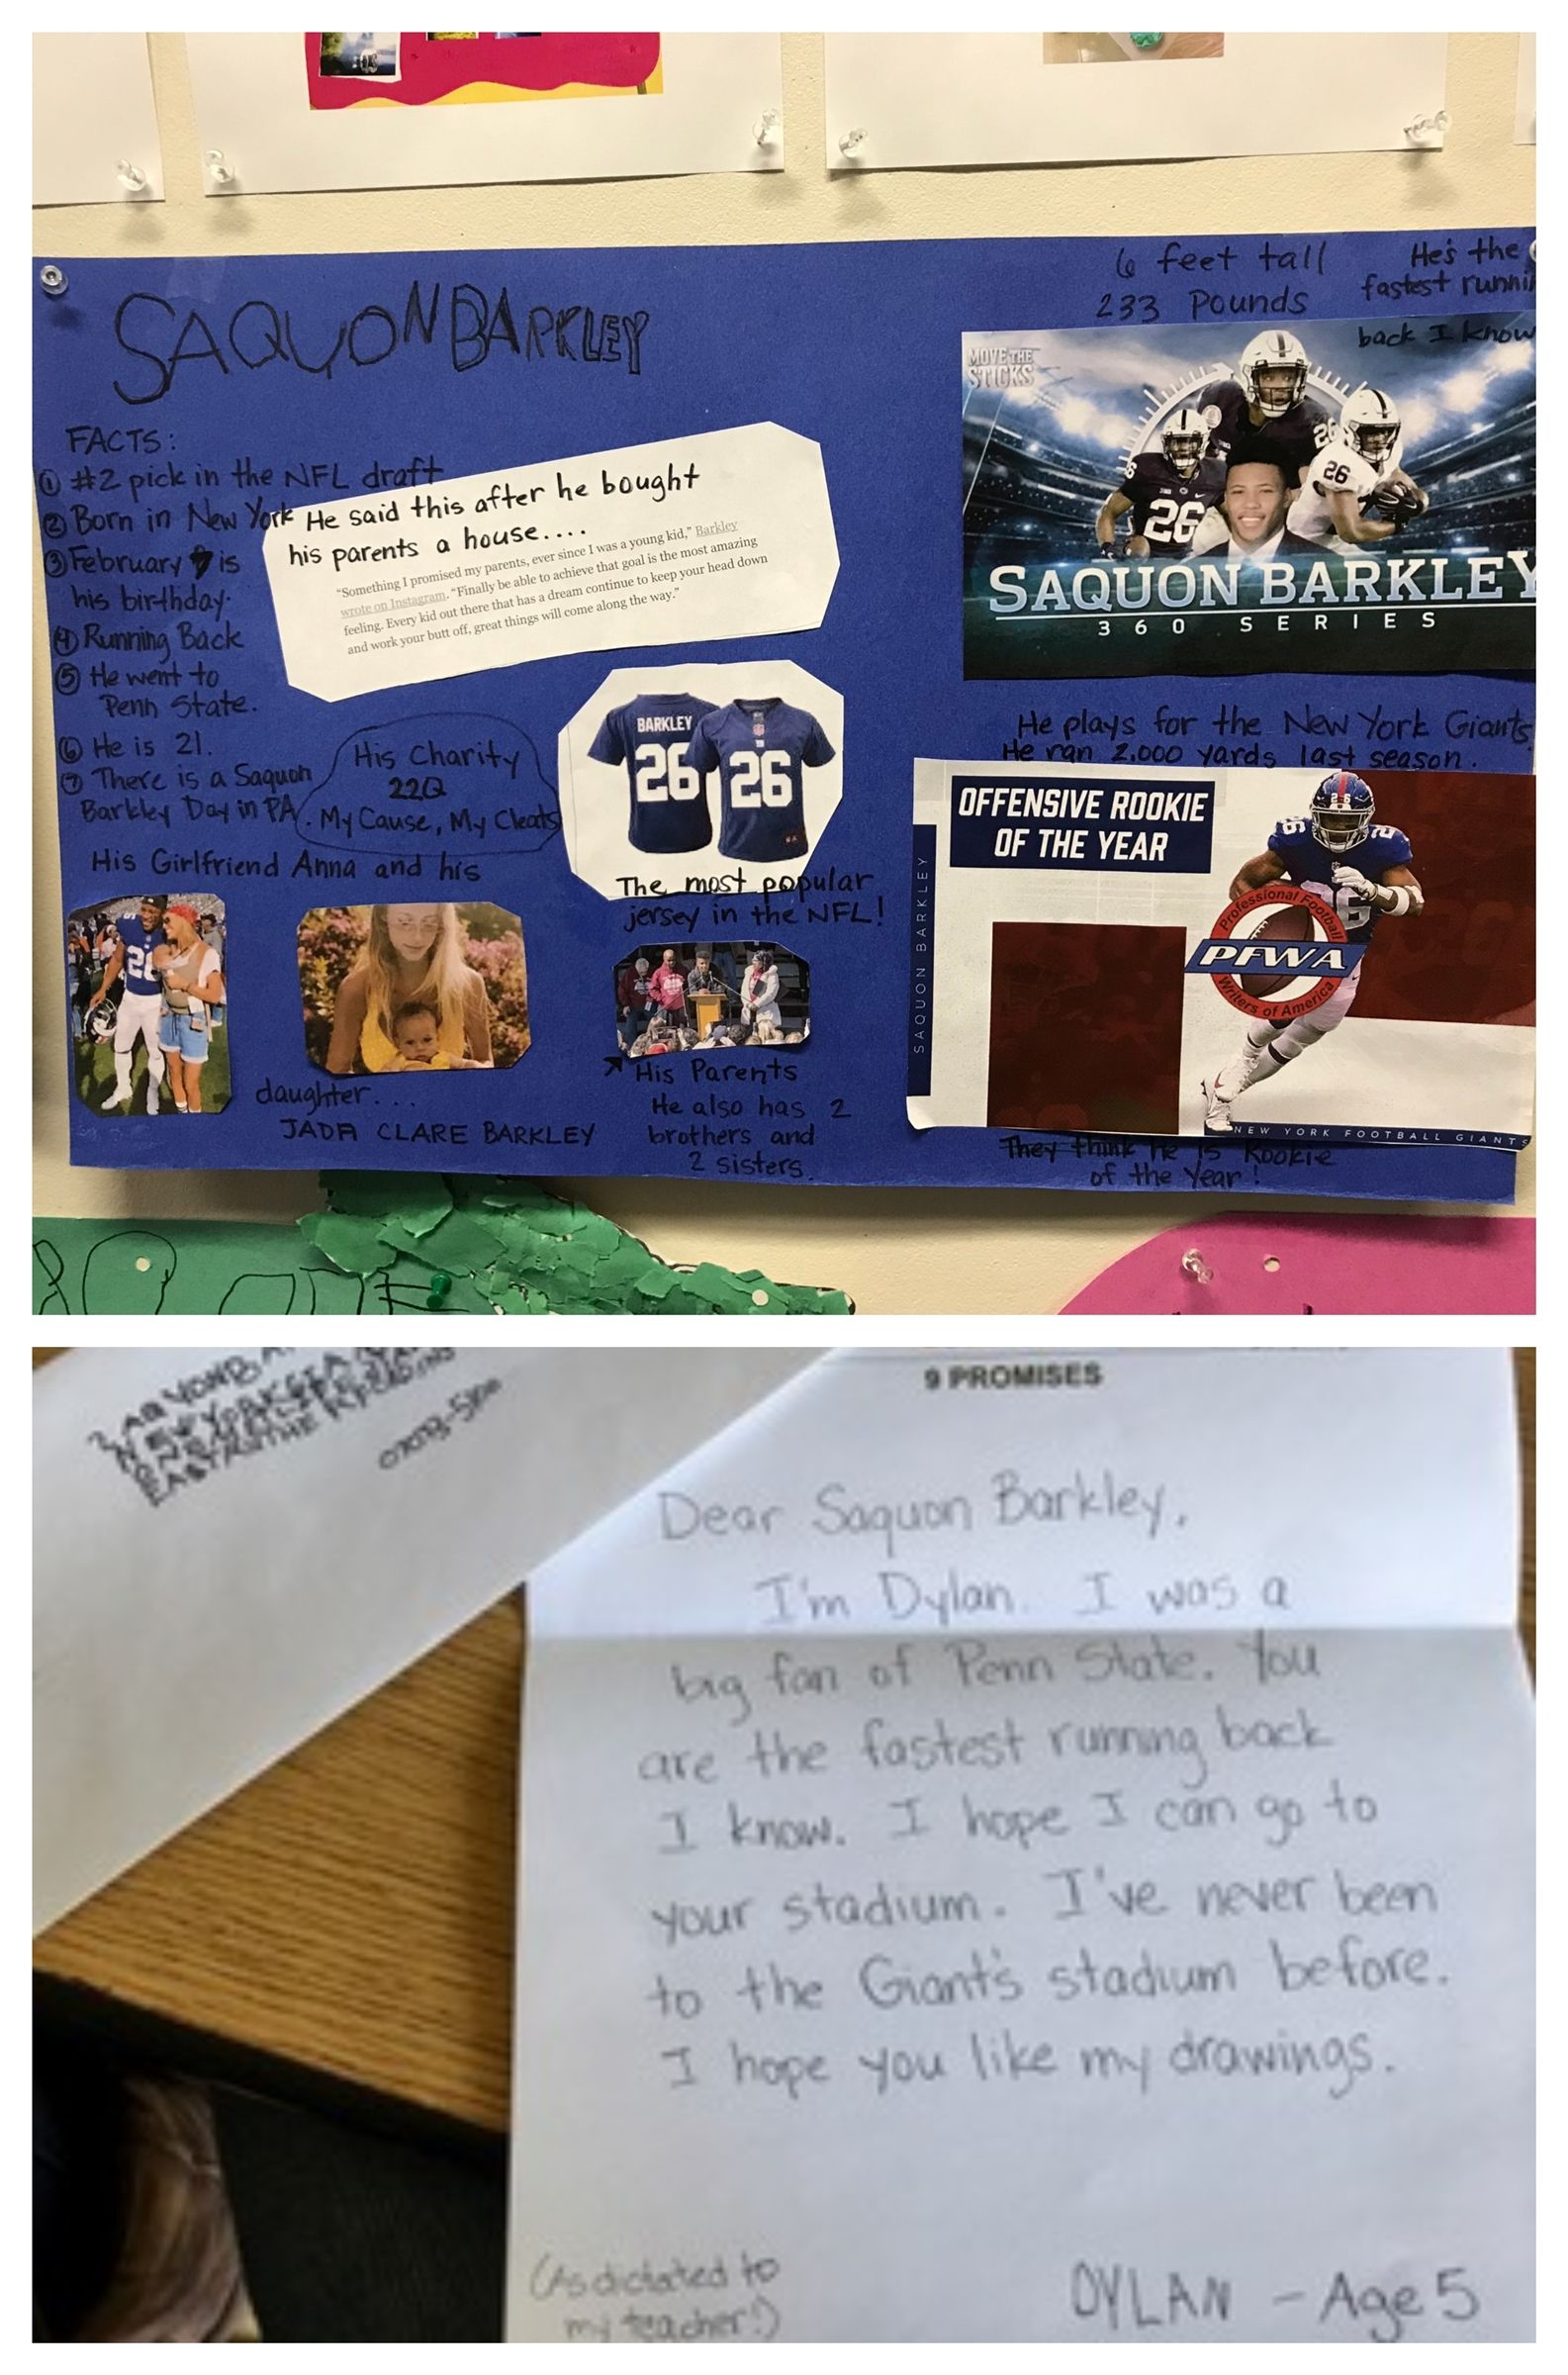 One student was interested in the running back for the New York Giants, Saquon Barkley. He even wrote him a letter.